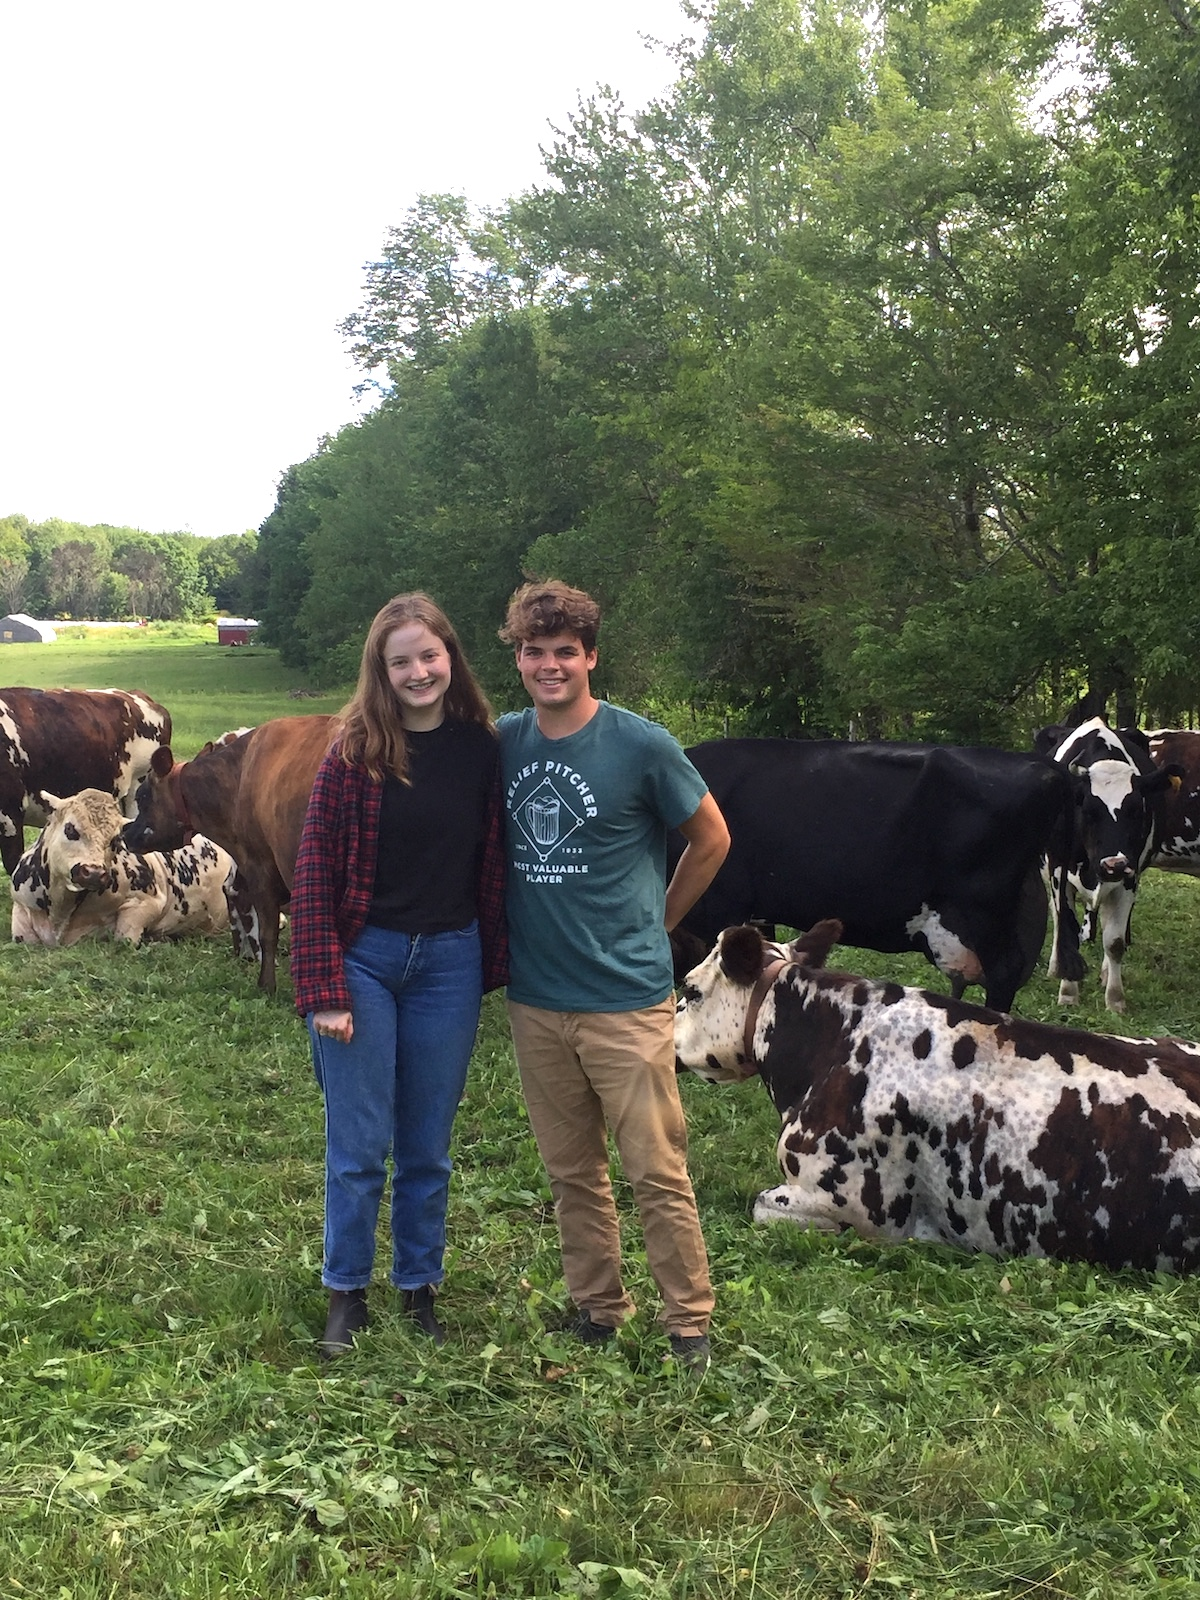 Eleanor Paasche and Cal Soule with dairy cows